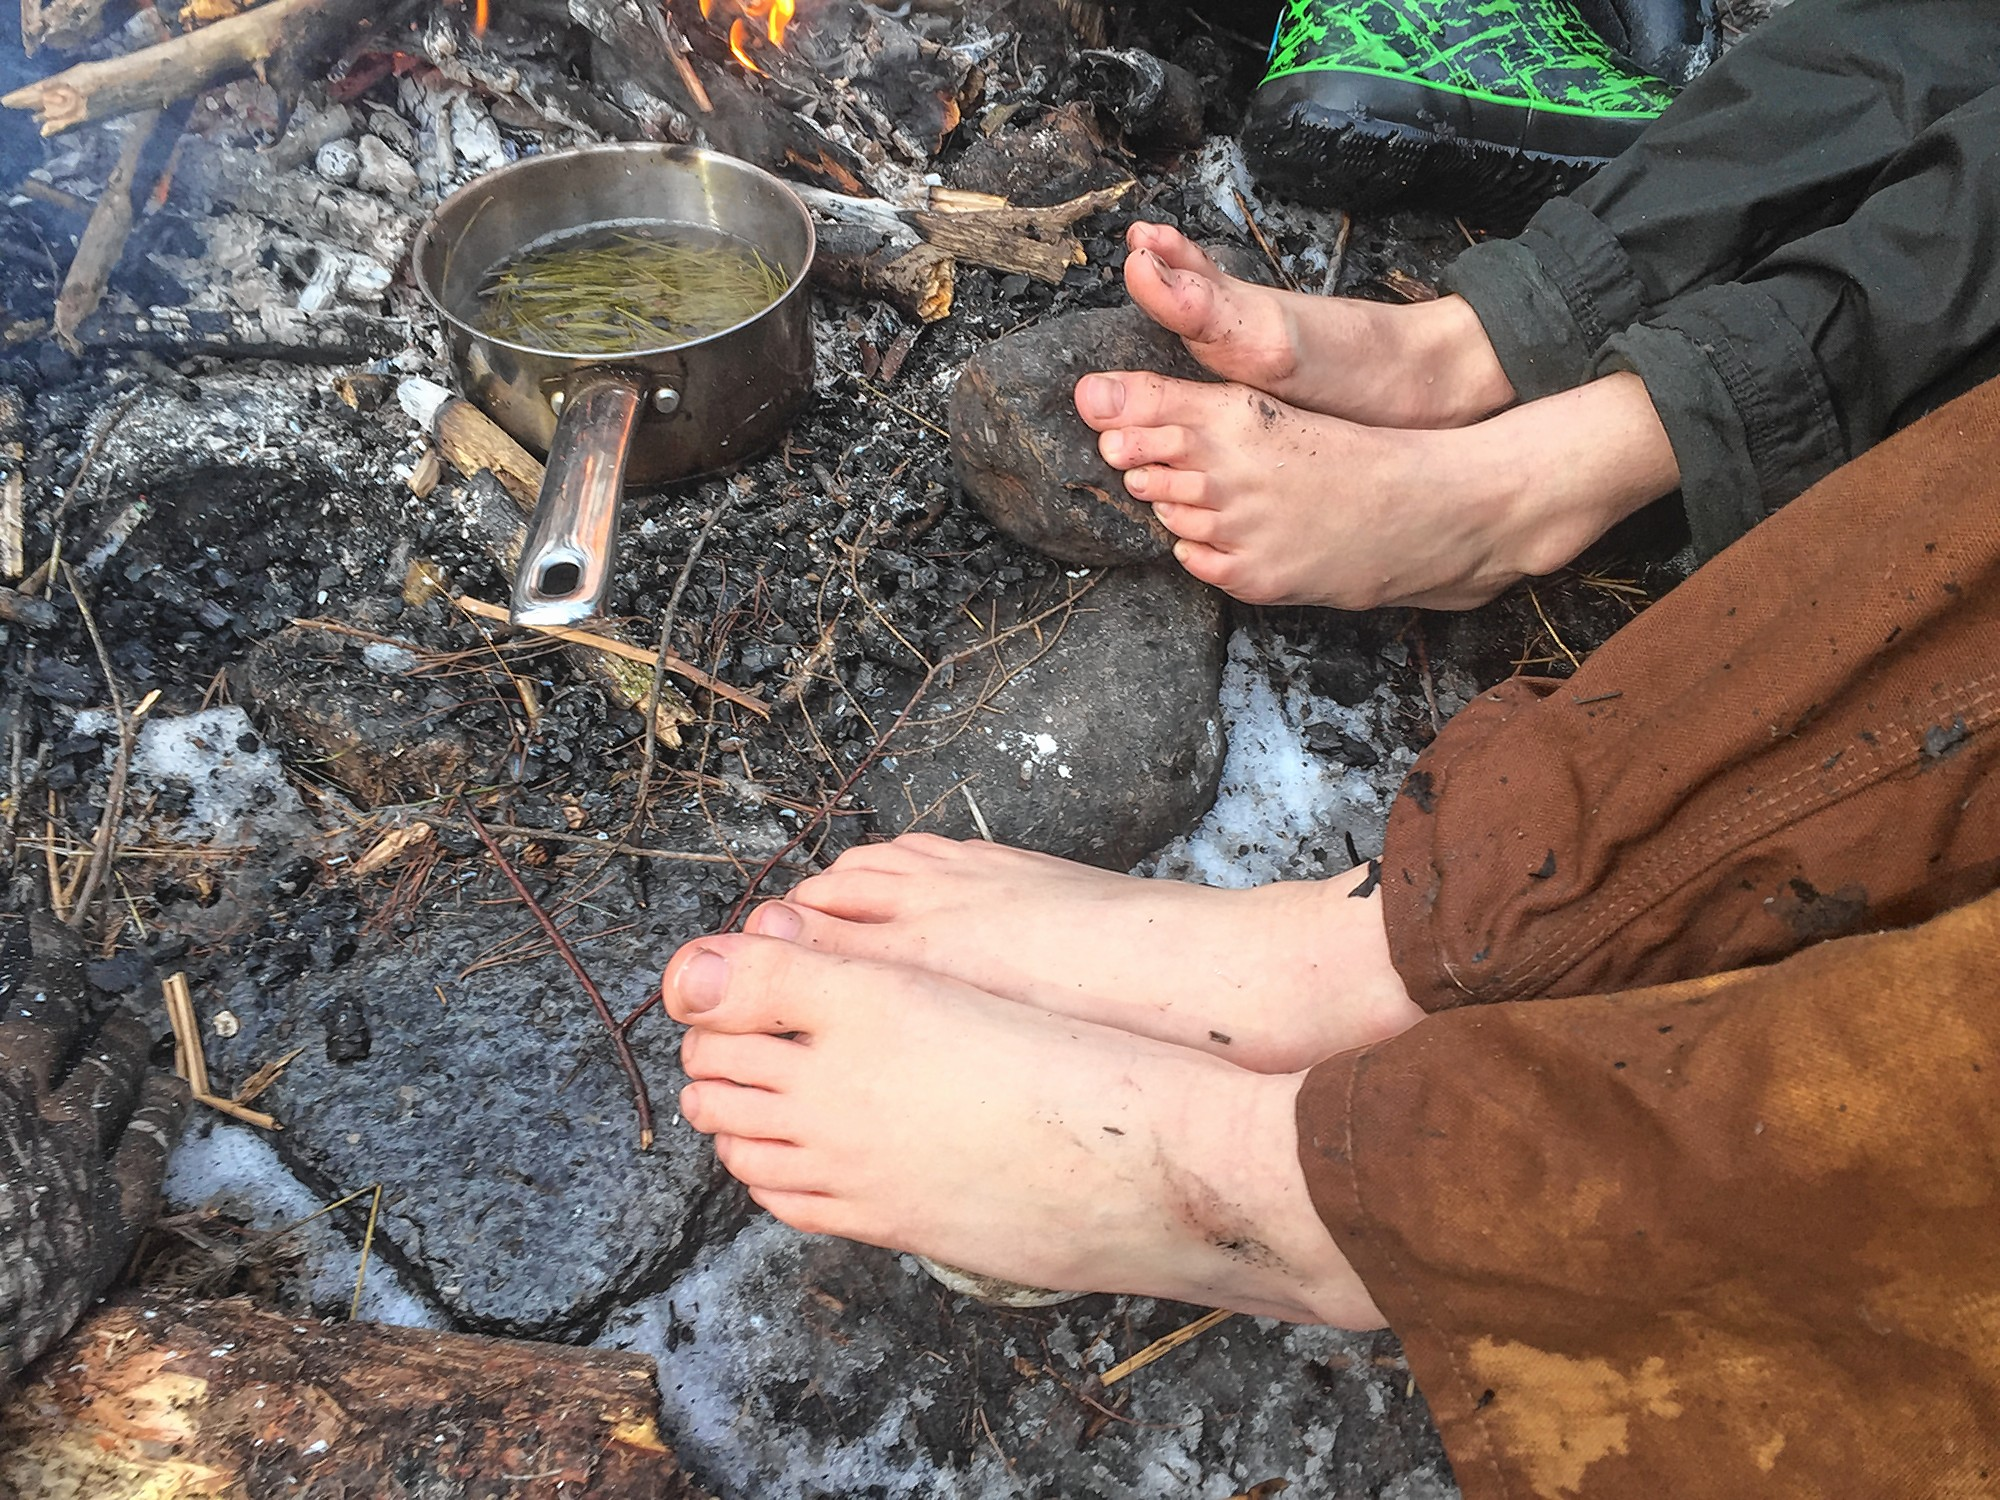 Wellness: Going Barefoot to Connect with the Natural World